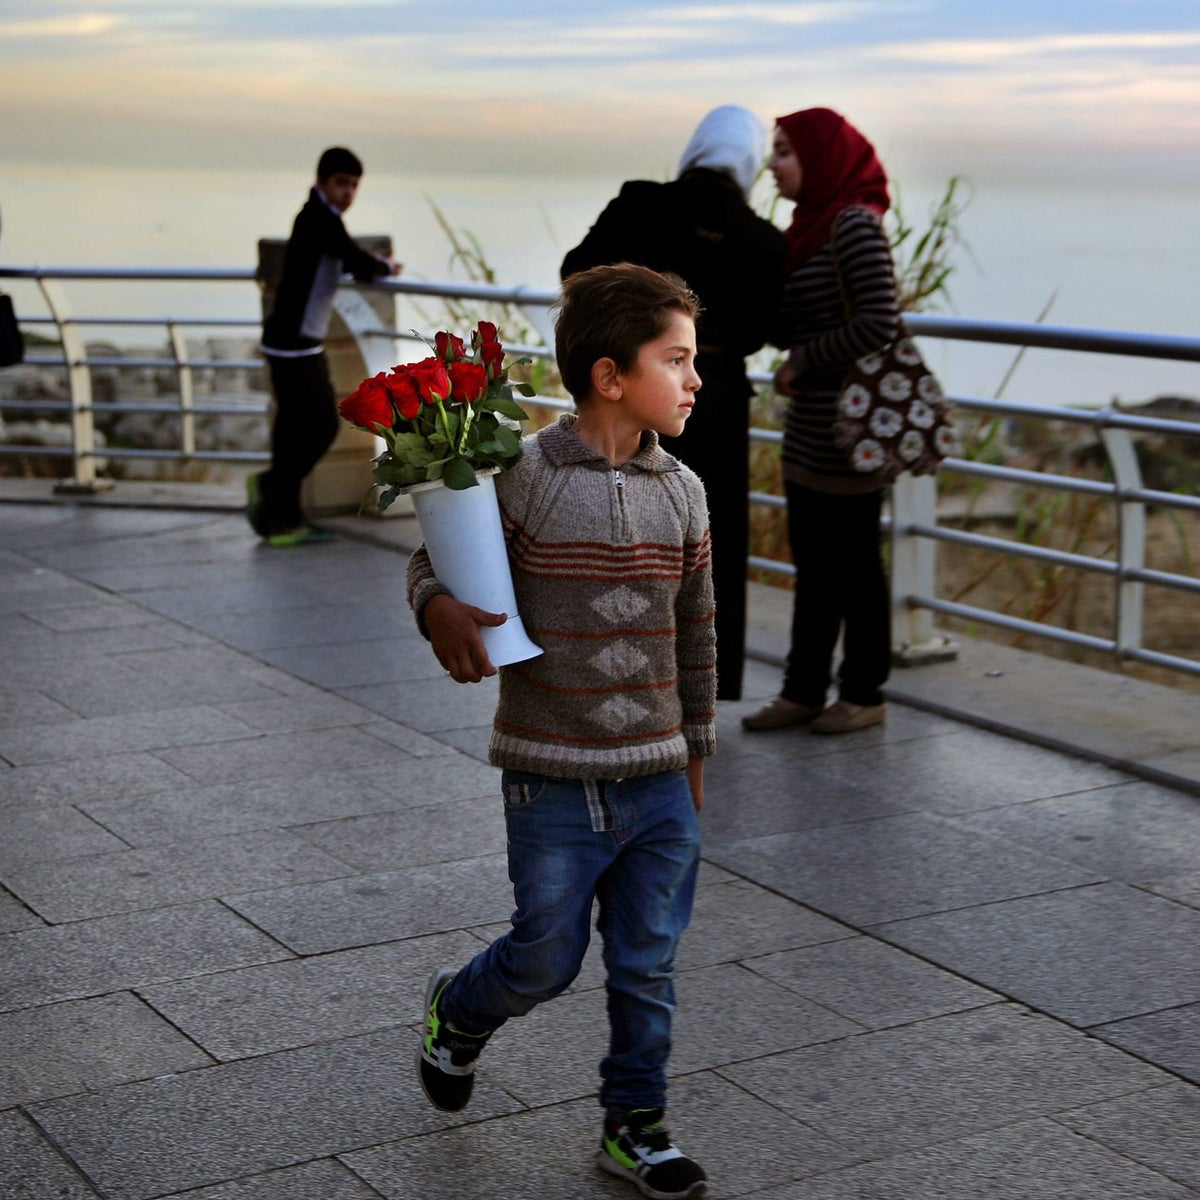 In this Thursday, Feb. 18, 2016 photo, Syrian refugee Ahmed Abrouch, 8, who fled with his family from Aleppo Syria, makes a living by selling flowers on the Mediterranean Sea waterfront promenade in Beirut, Lebanon. More than 1.1 million Syrians have sought refuge here since the start of the 2011 uprising, more than half of them children.